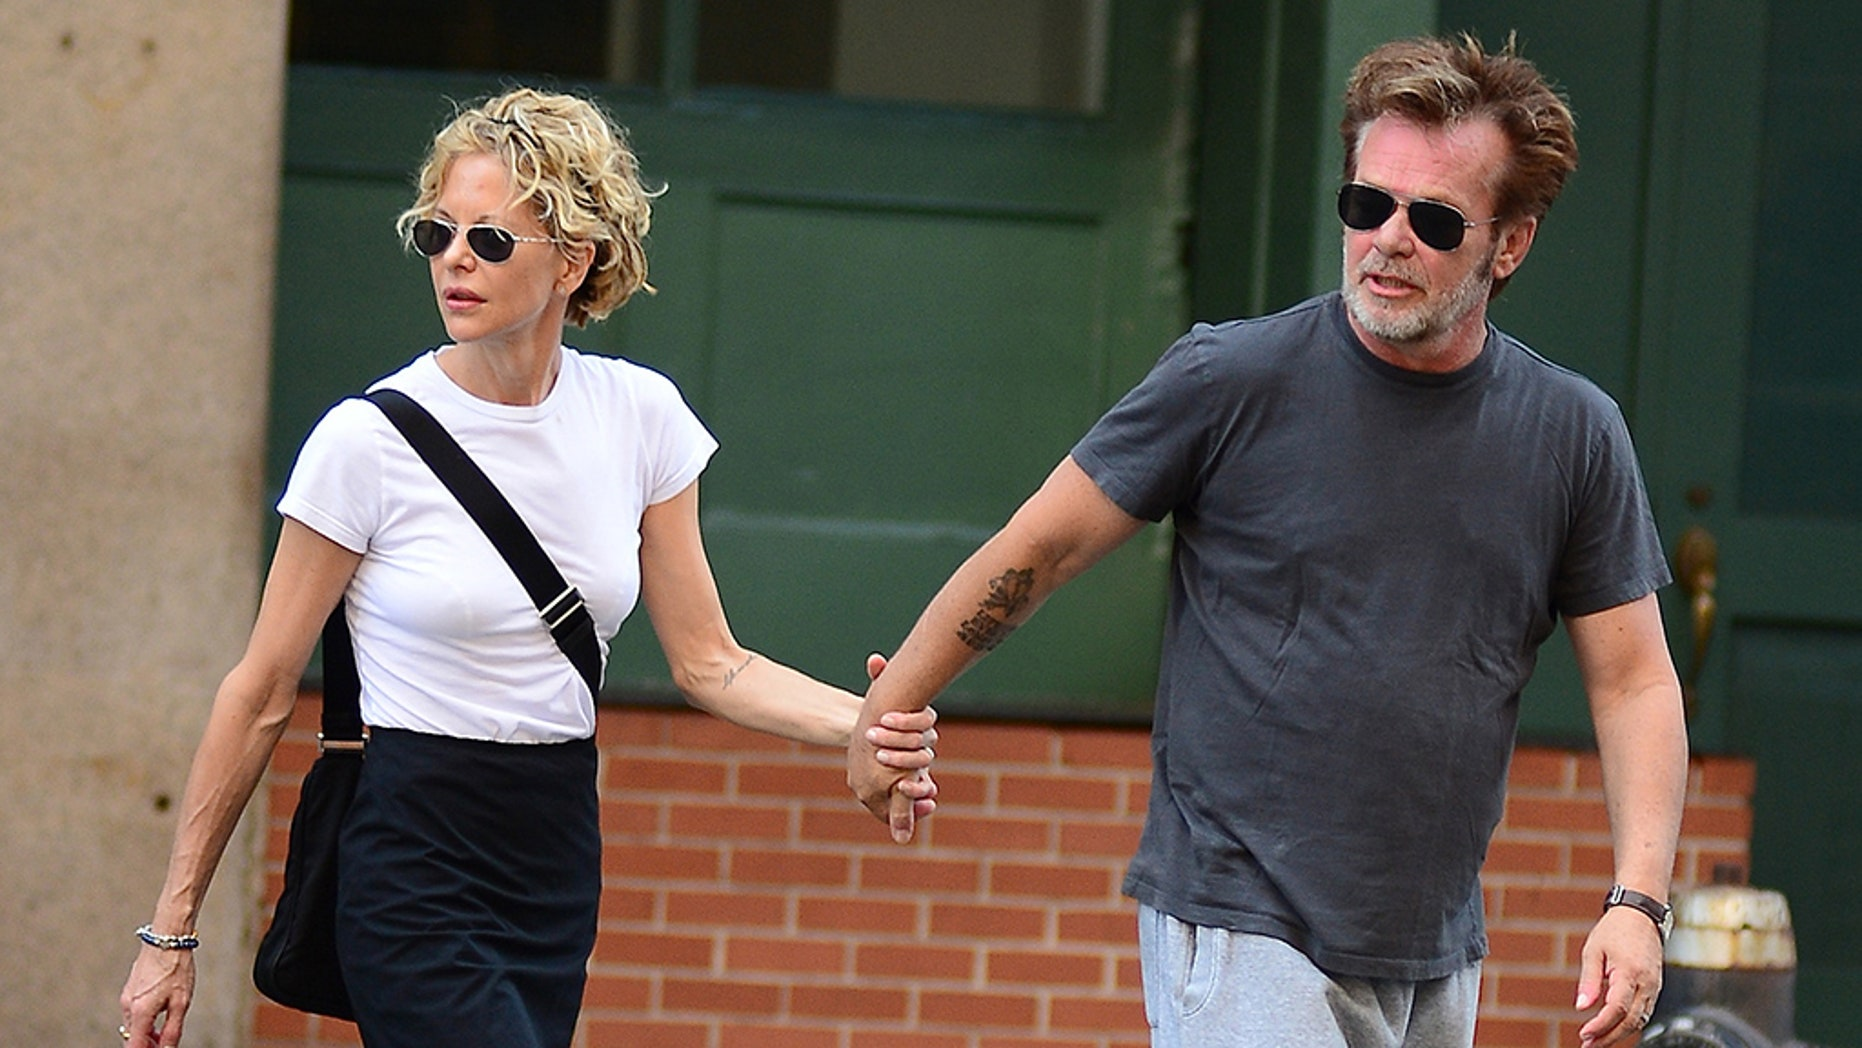 John Mellencamp & Meg Ryan Are Engaged!